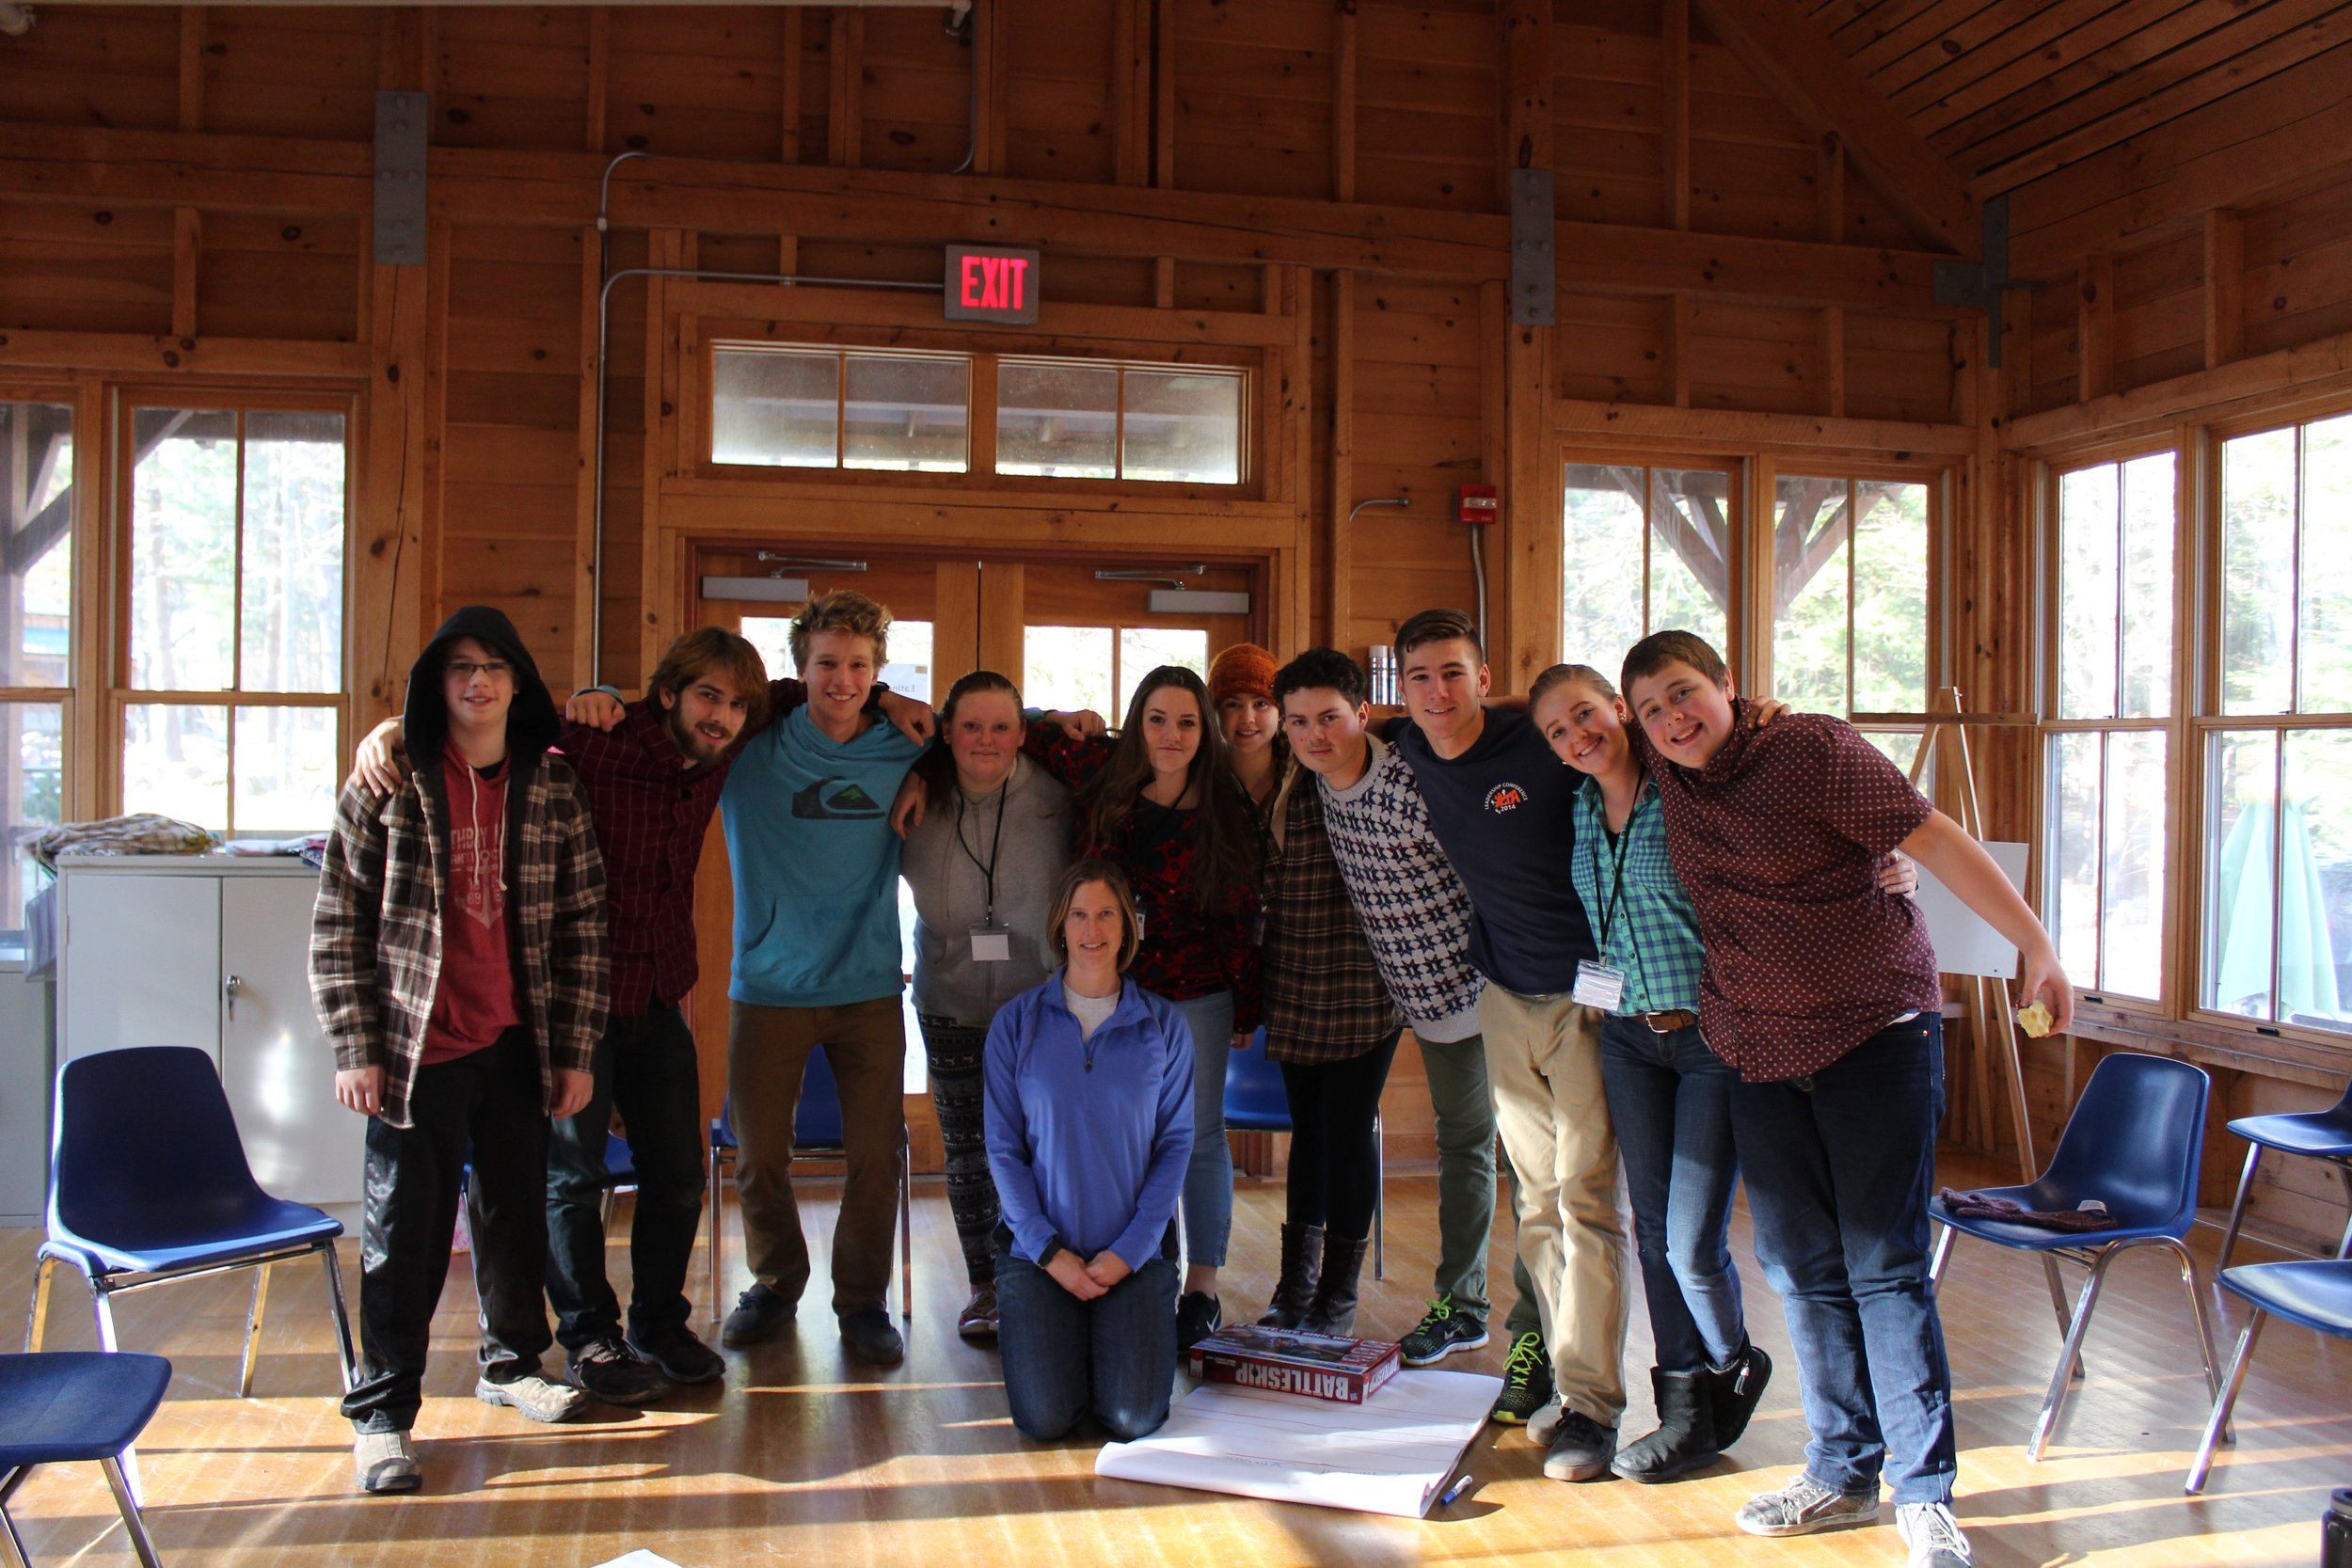 Profile School Youth Ledership Through Adventure Group at The annual High School Conference